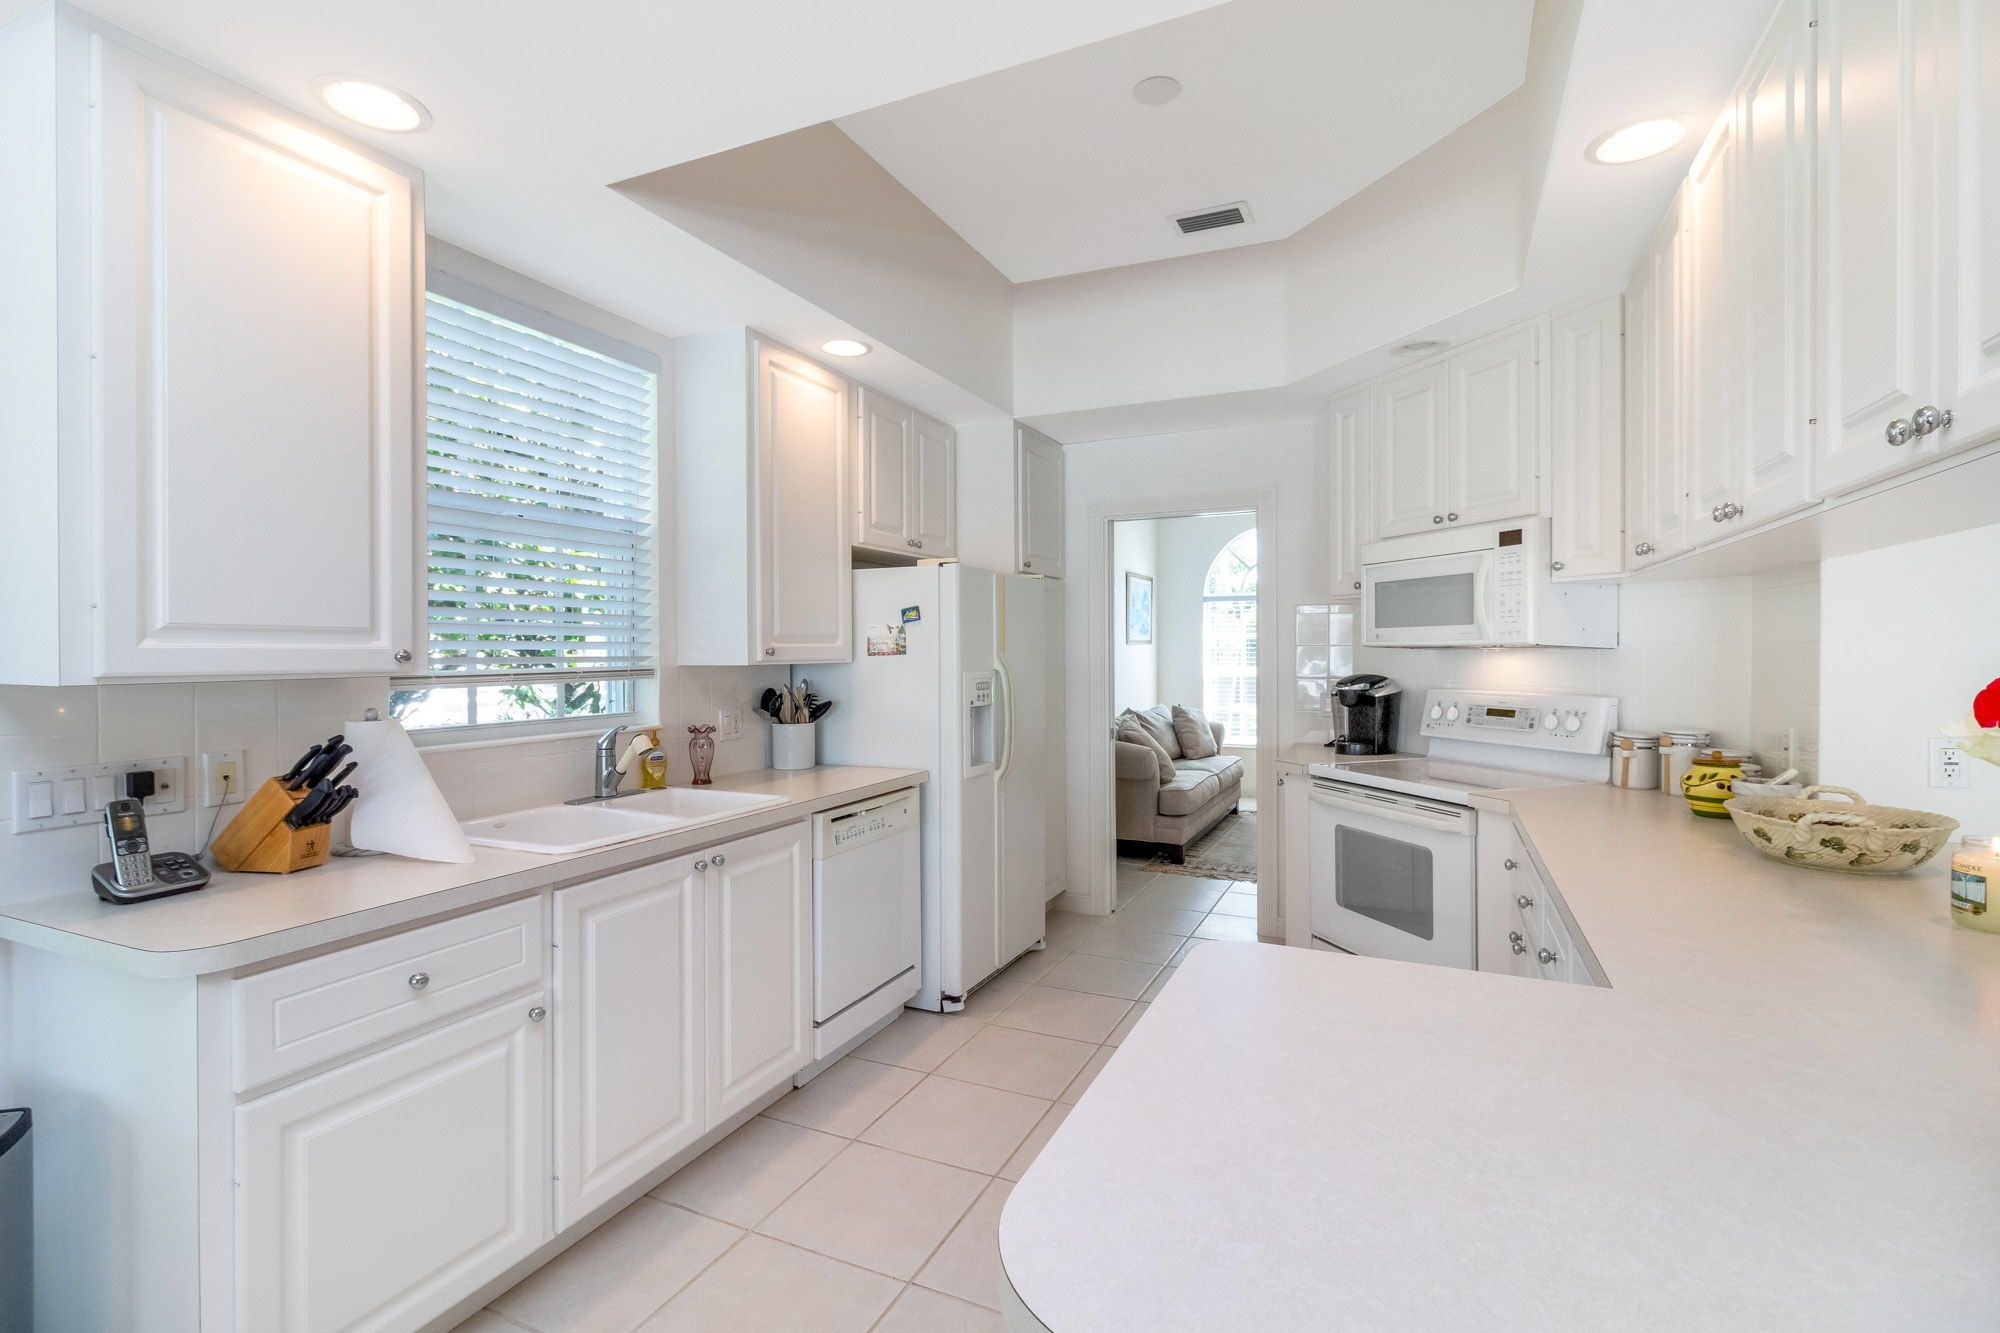 The Kitchen Is Open Concept And Has Spacious White Cabinets And Appliances A Tray Ceiling Large Behind Kitchen Design Open Concept Kitchen Palm Beach Gardens